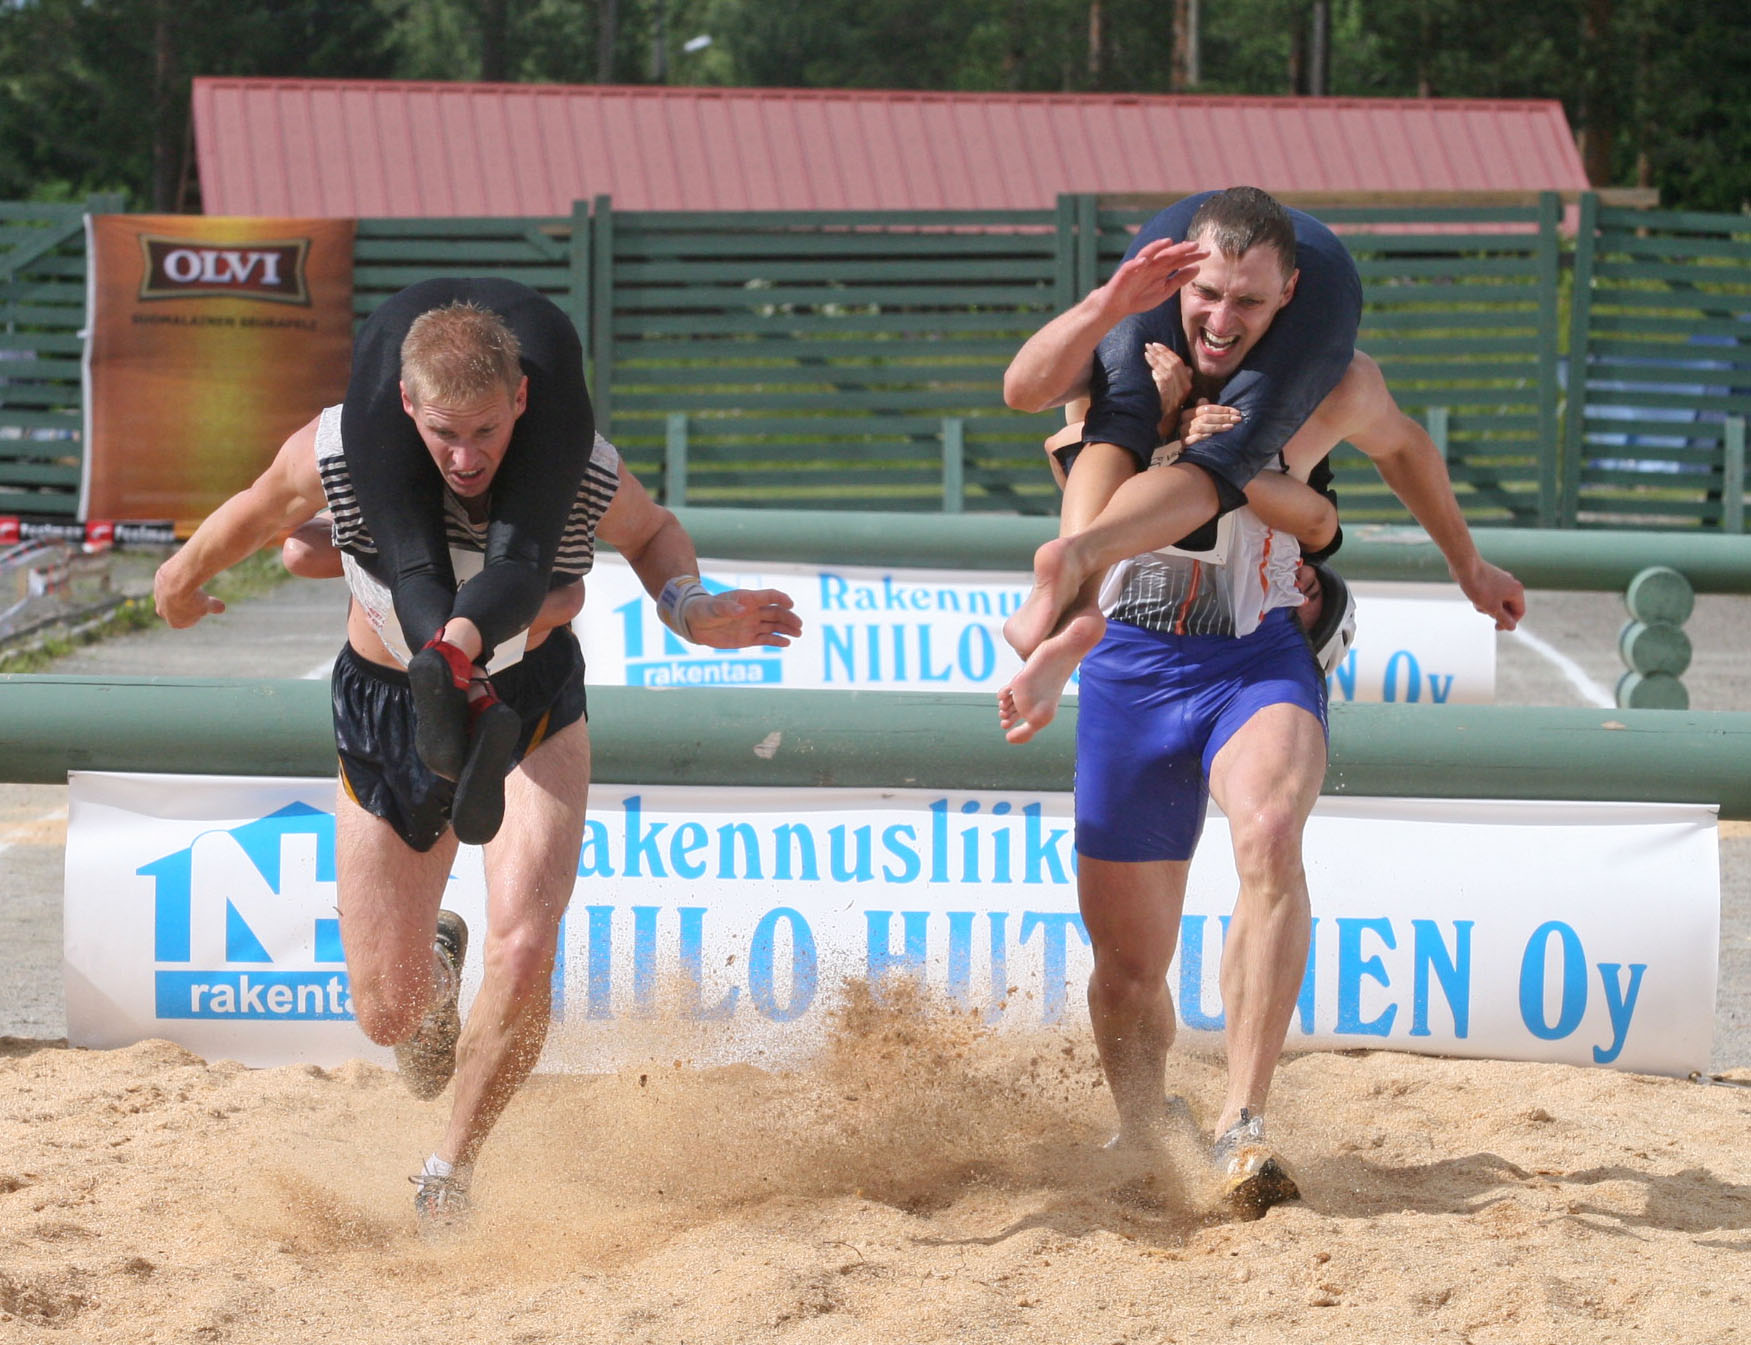 Exciting Destinations, Sonkajarvi, Finland, Wife Carrying World Championships, Racers 02